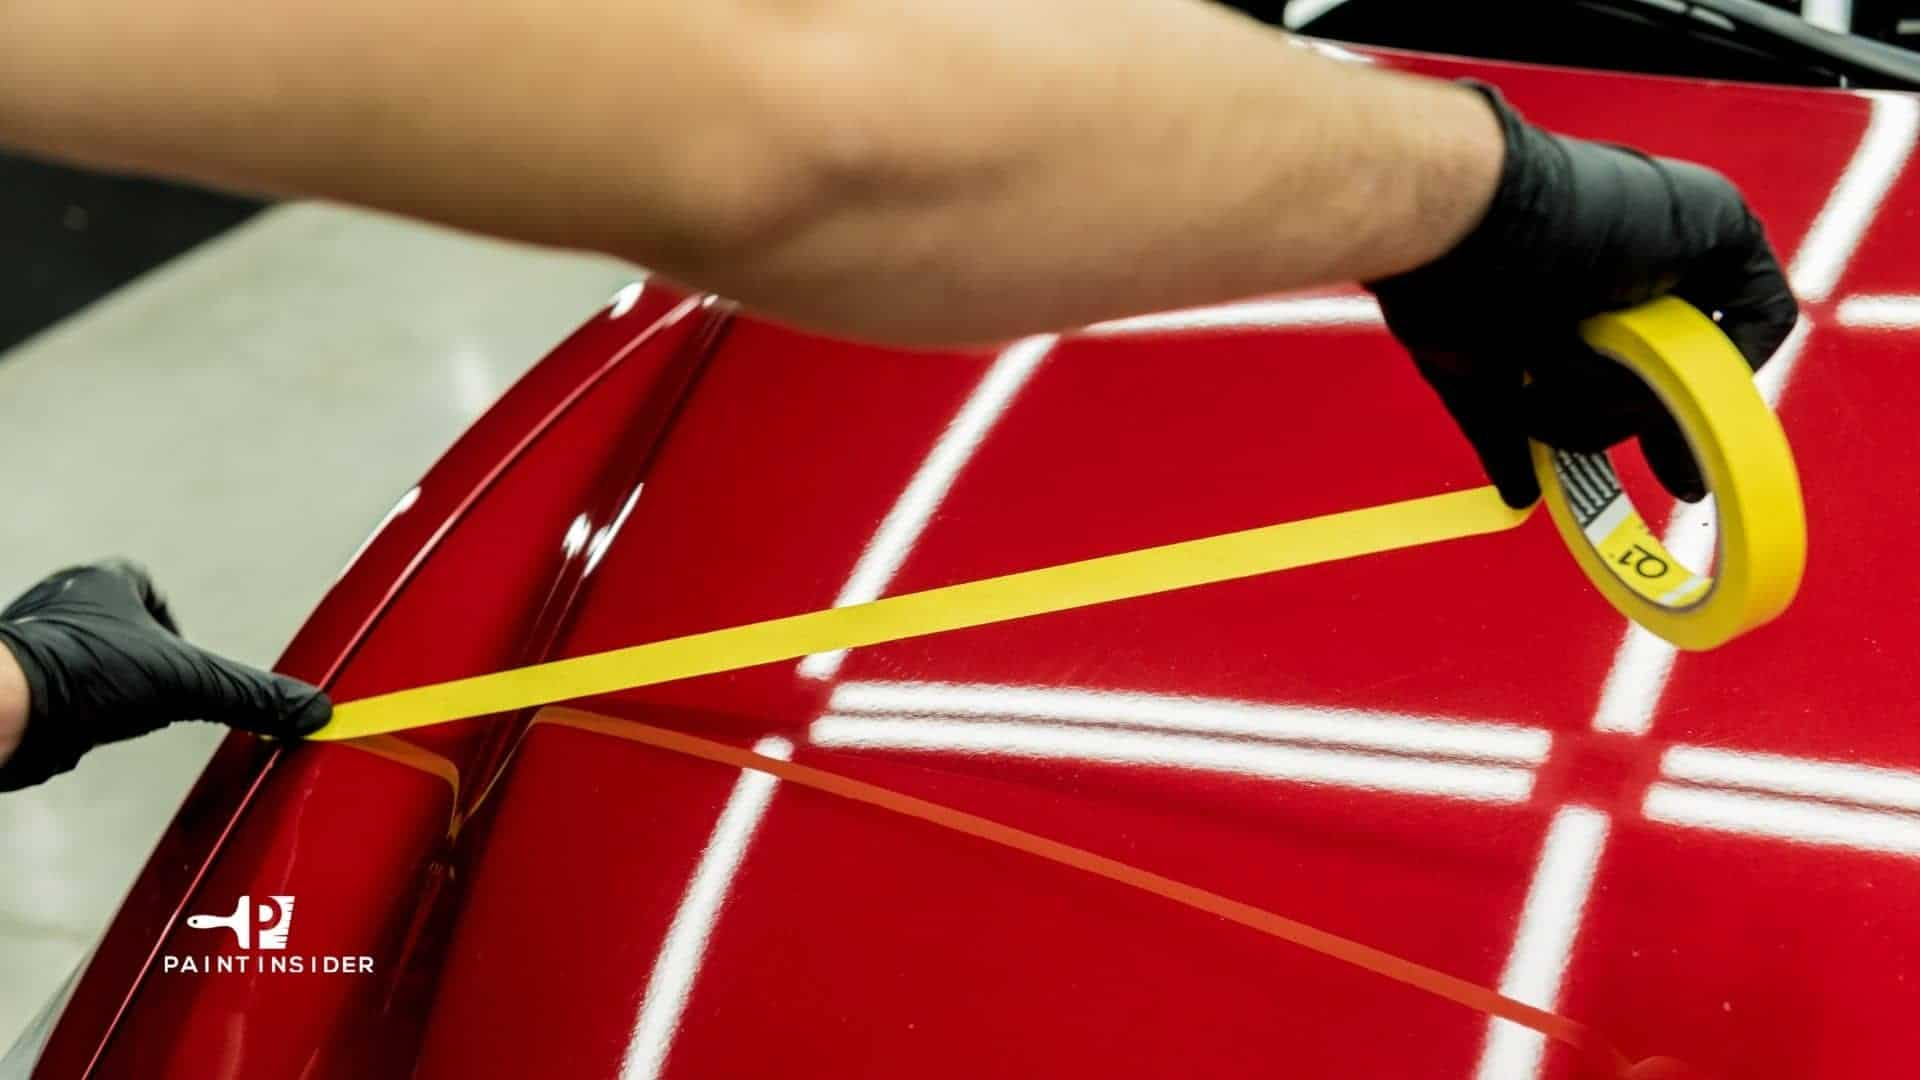 Best Tape To Use On Car Paint